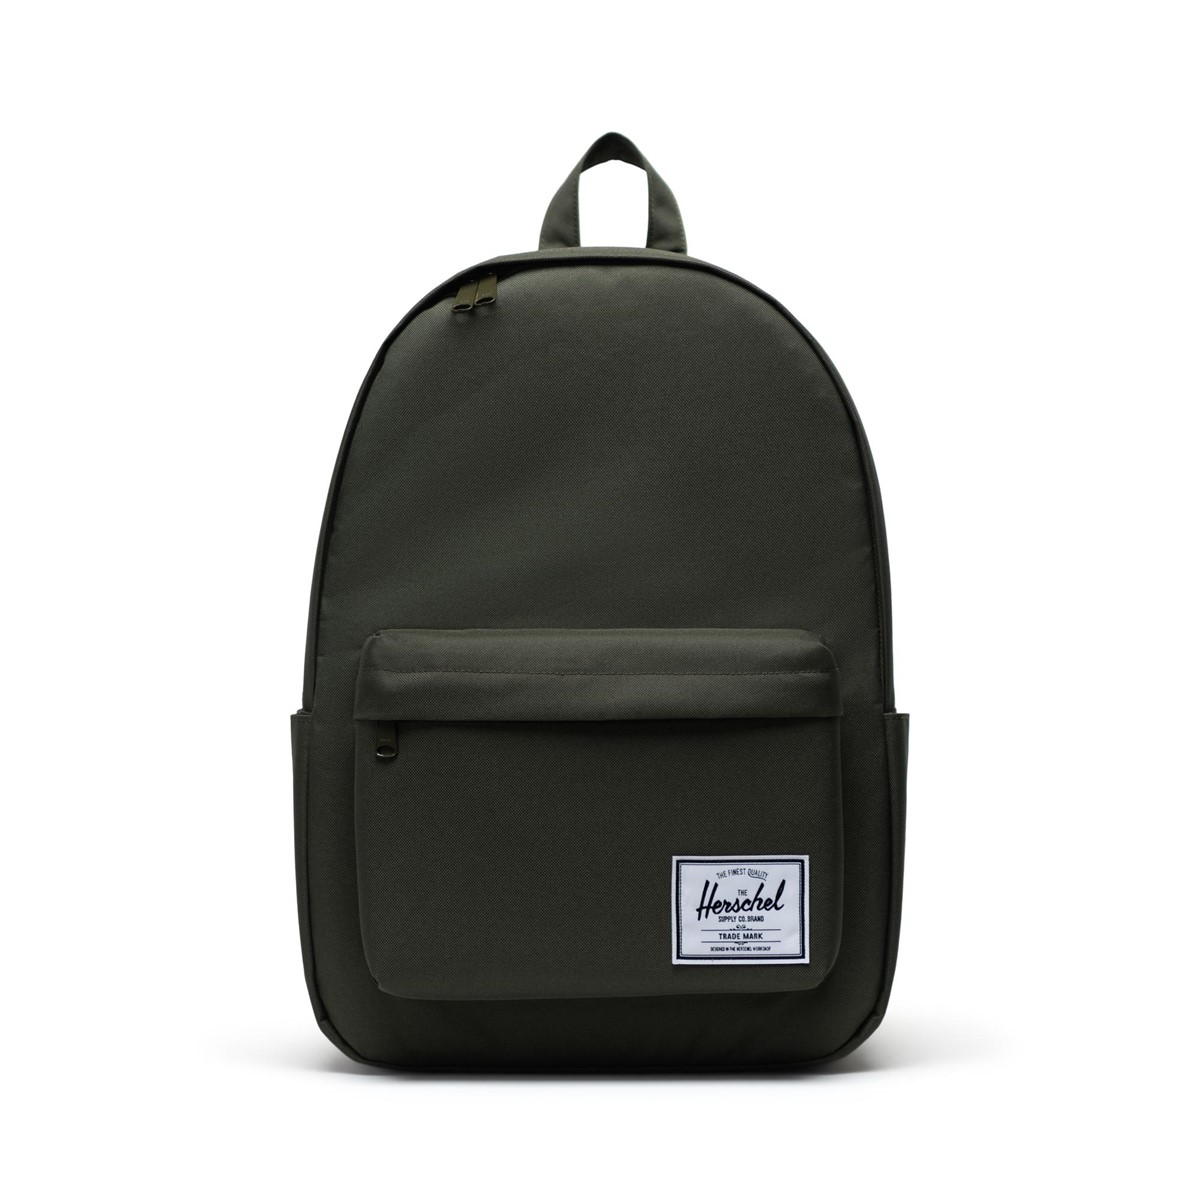 Eco Classic XL Backpack in Green